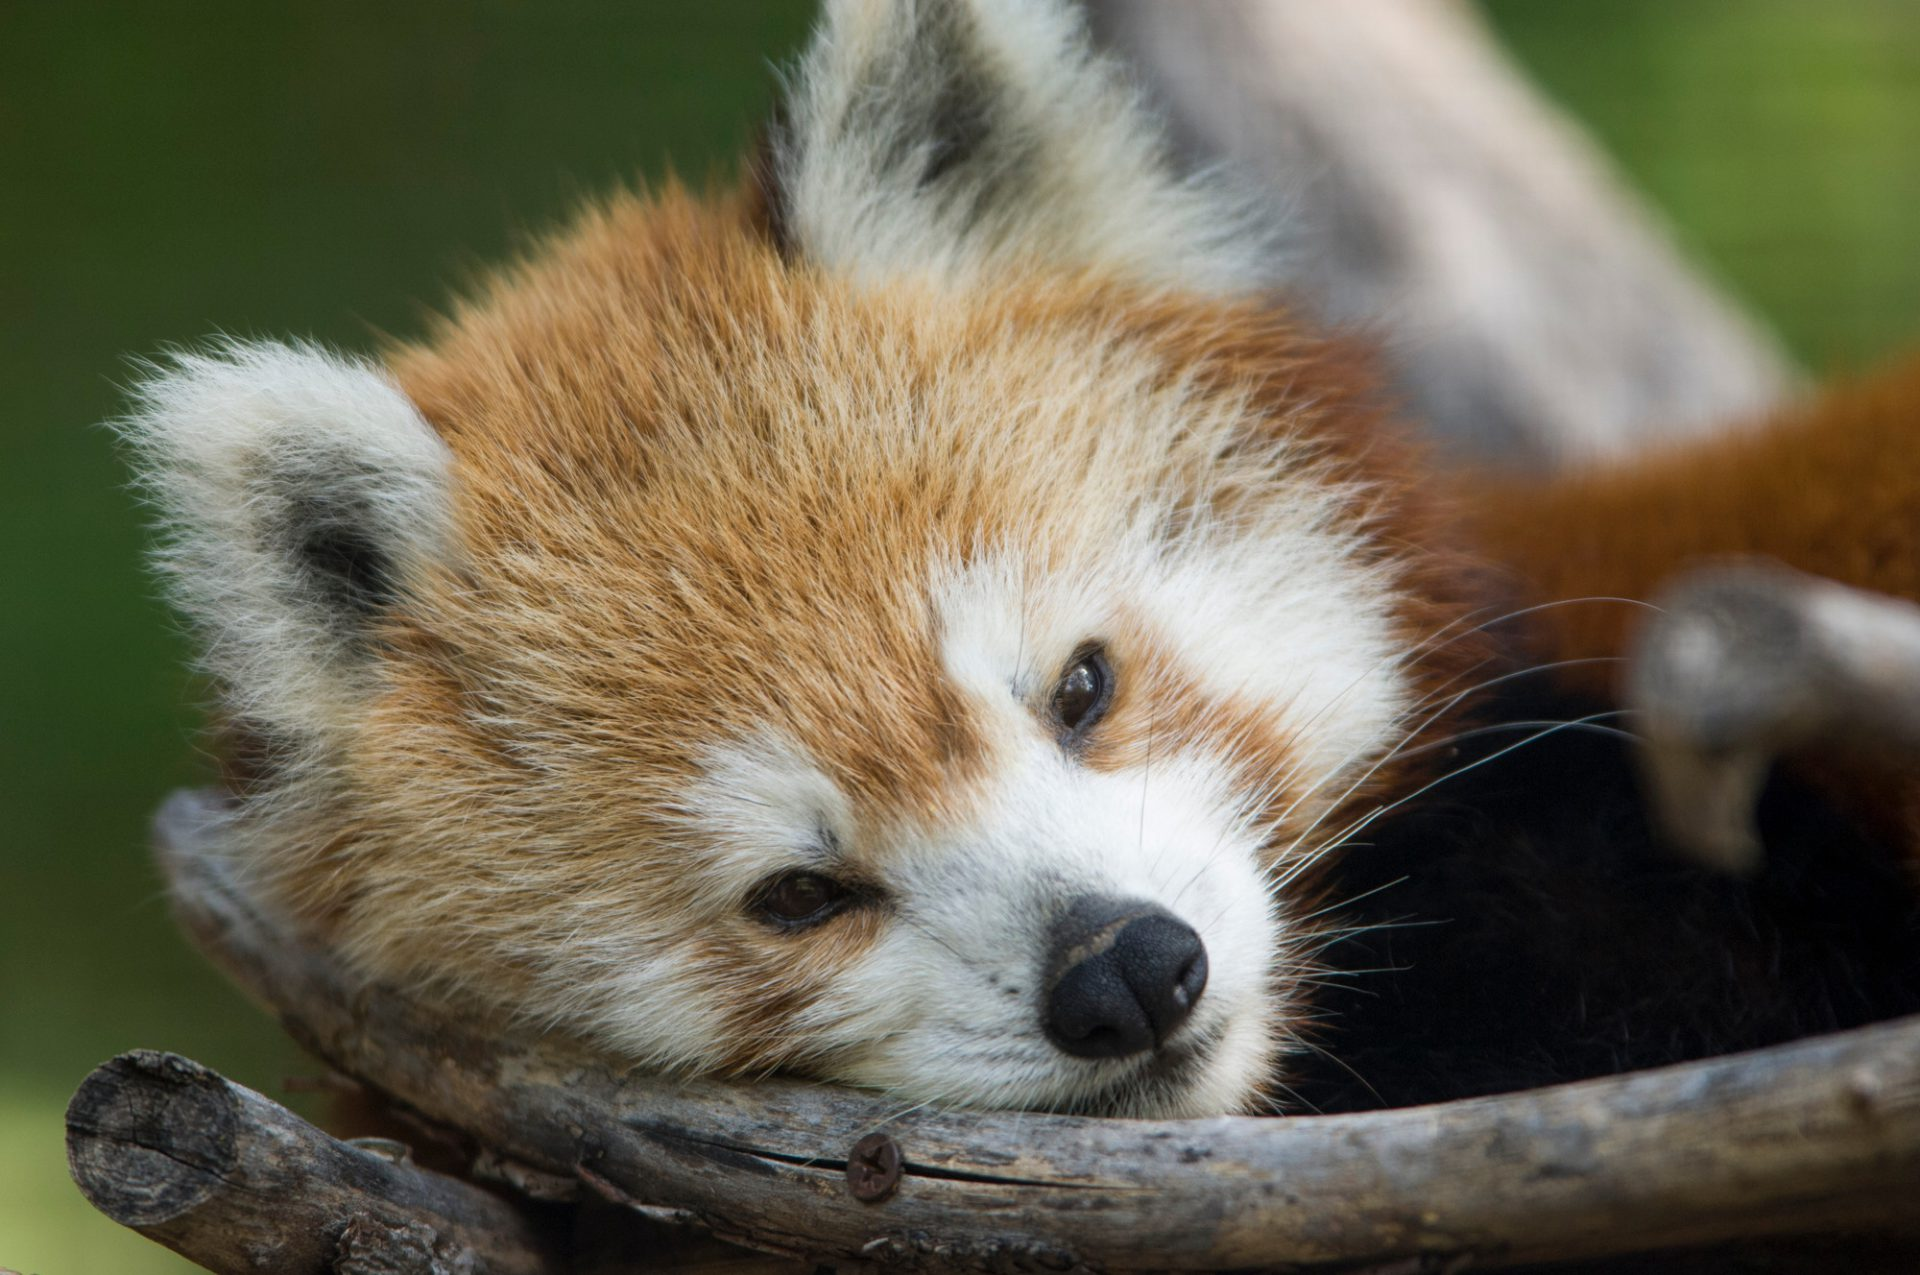 Picture of an endangered red panda (Ailurus fulgens) at the Sunset Zoo in Manhattan, KS.